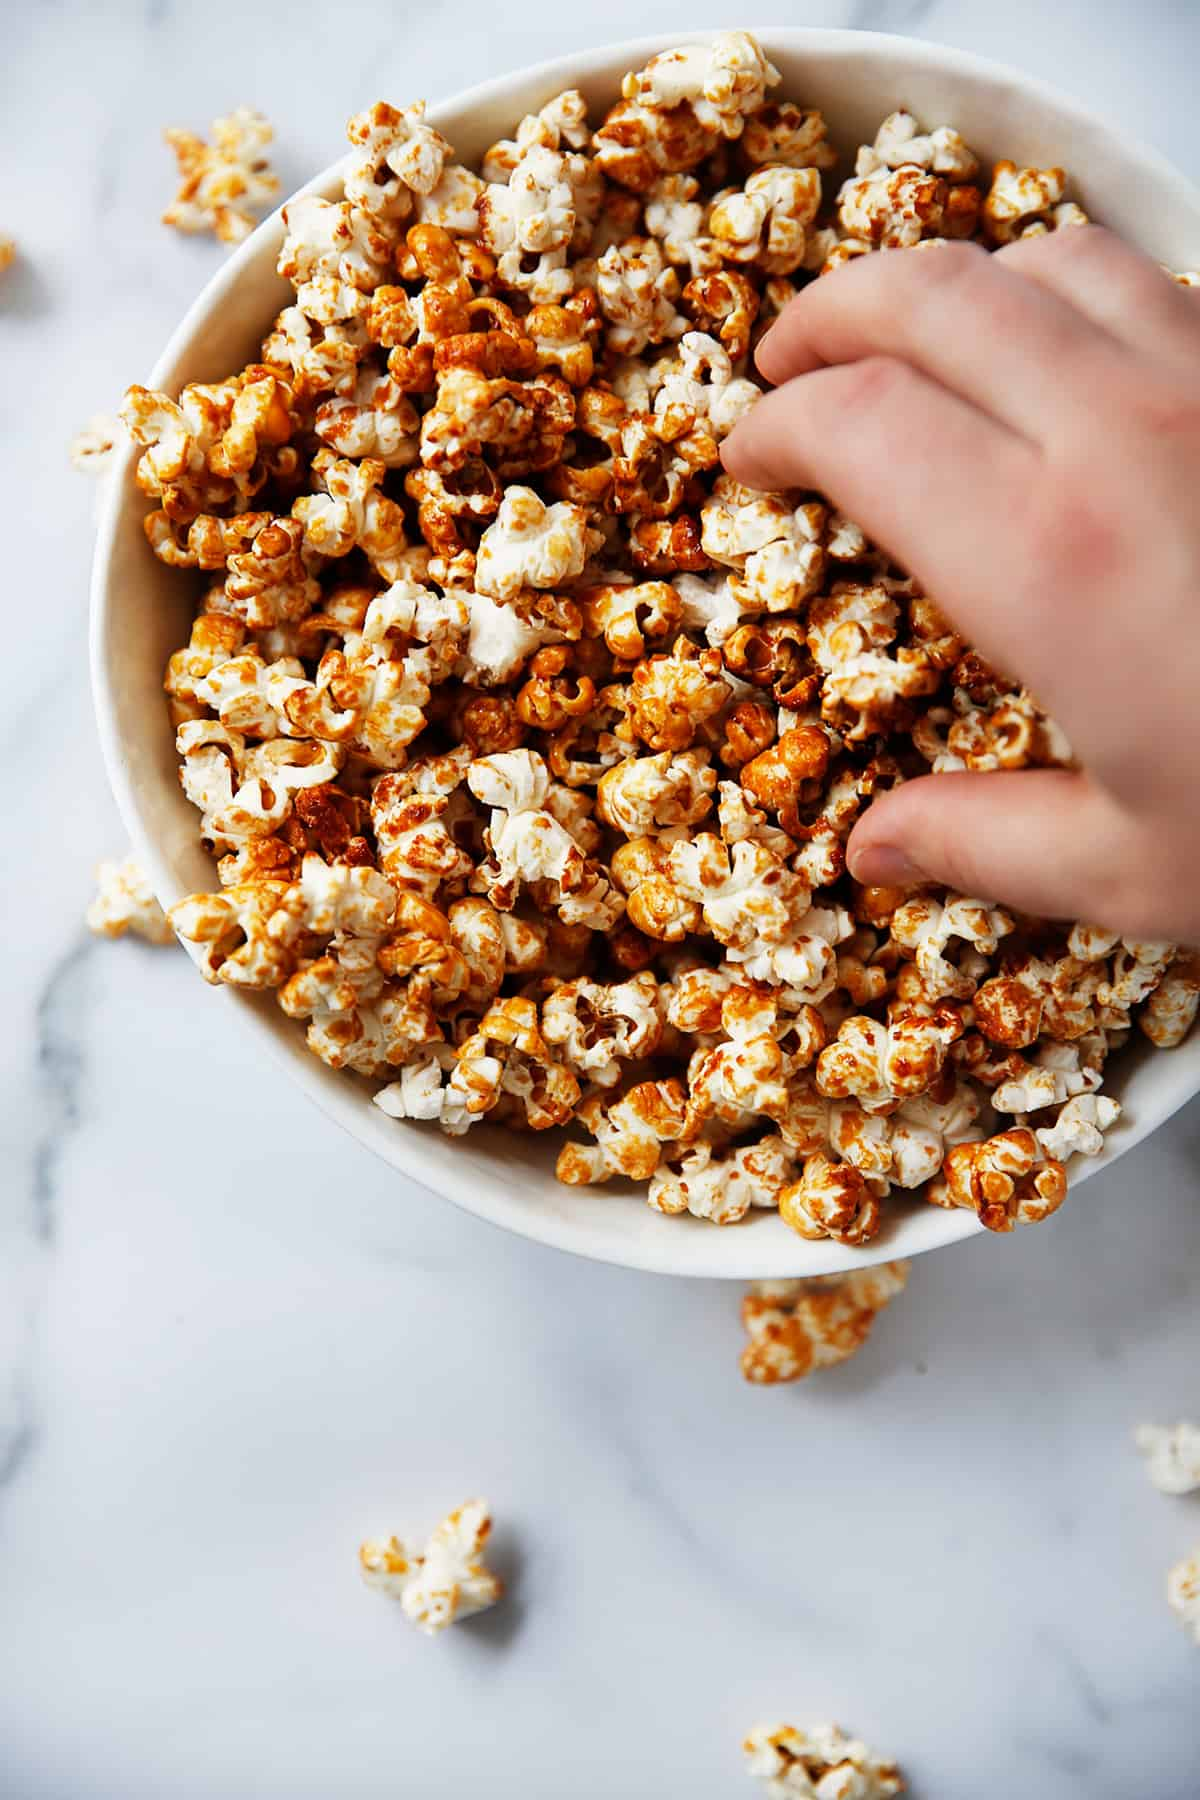 How to Make Maple Kettle Corn